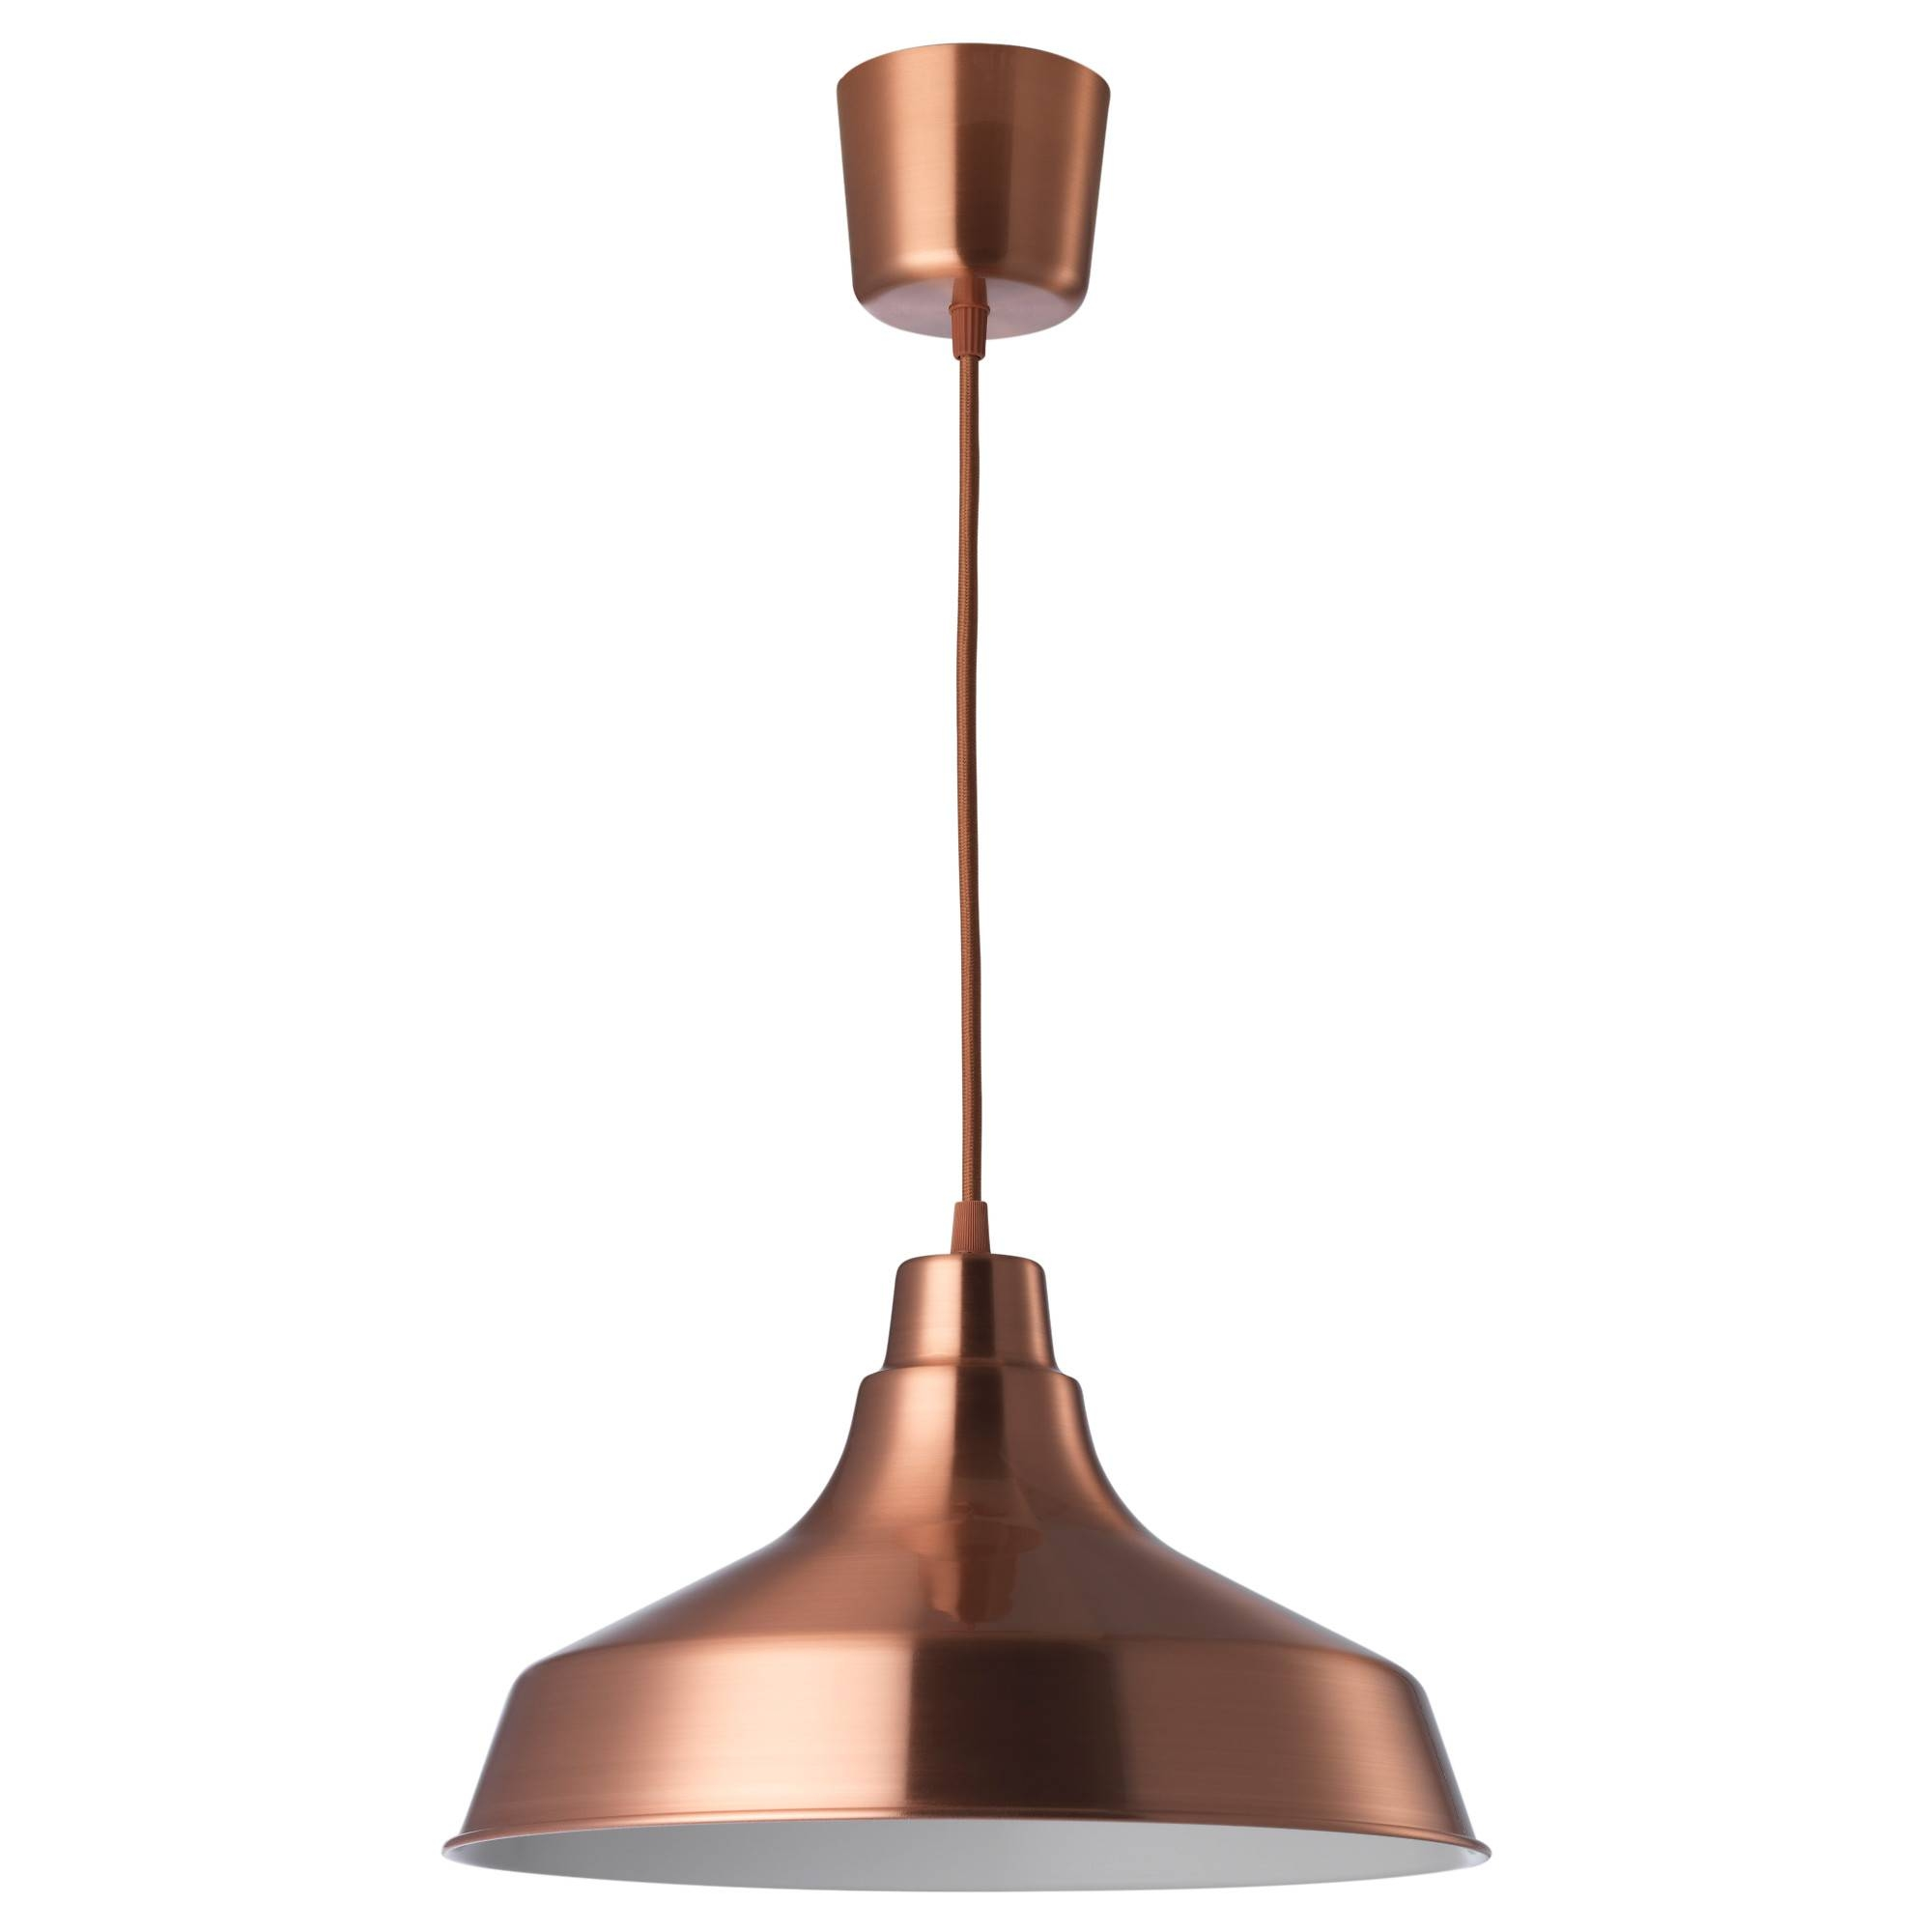 Vindkåre Pendant Lamp Copper Colour 36 Cm – Ikea For Ikea Pendants (View 14 of 15)